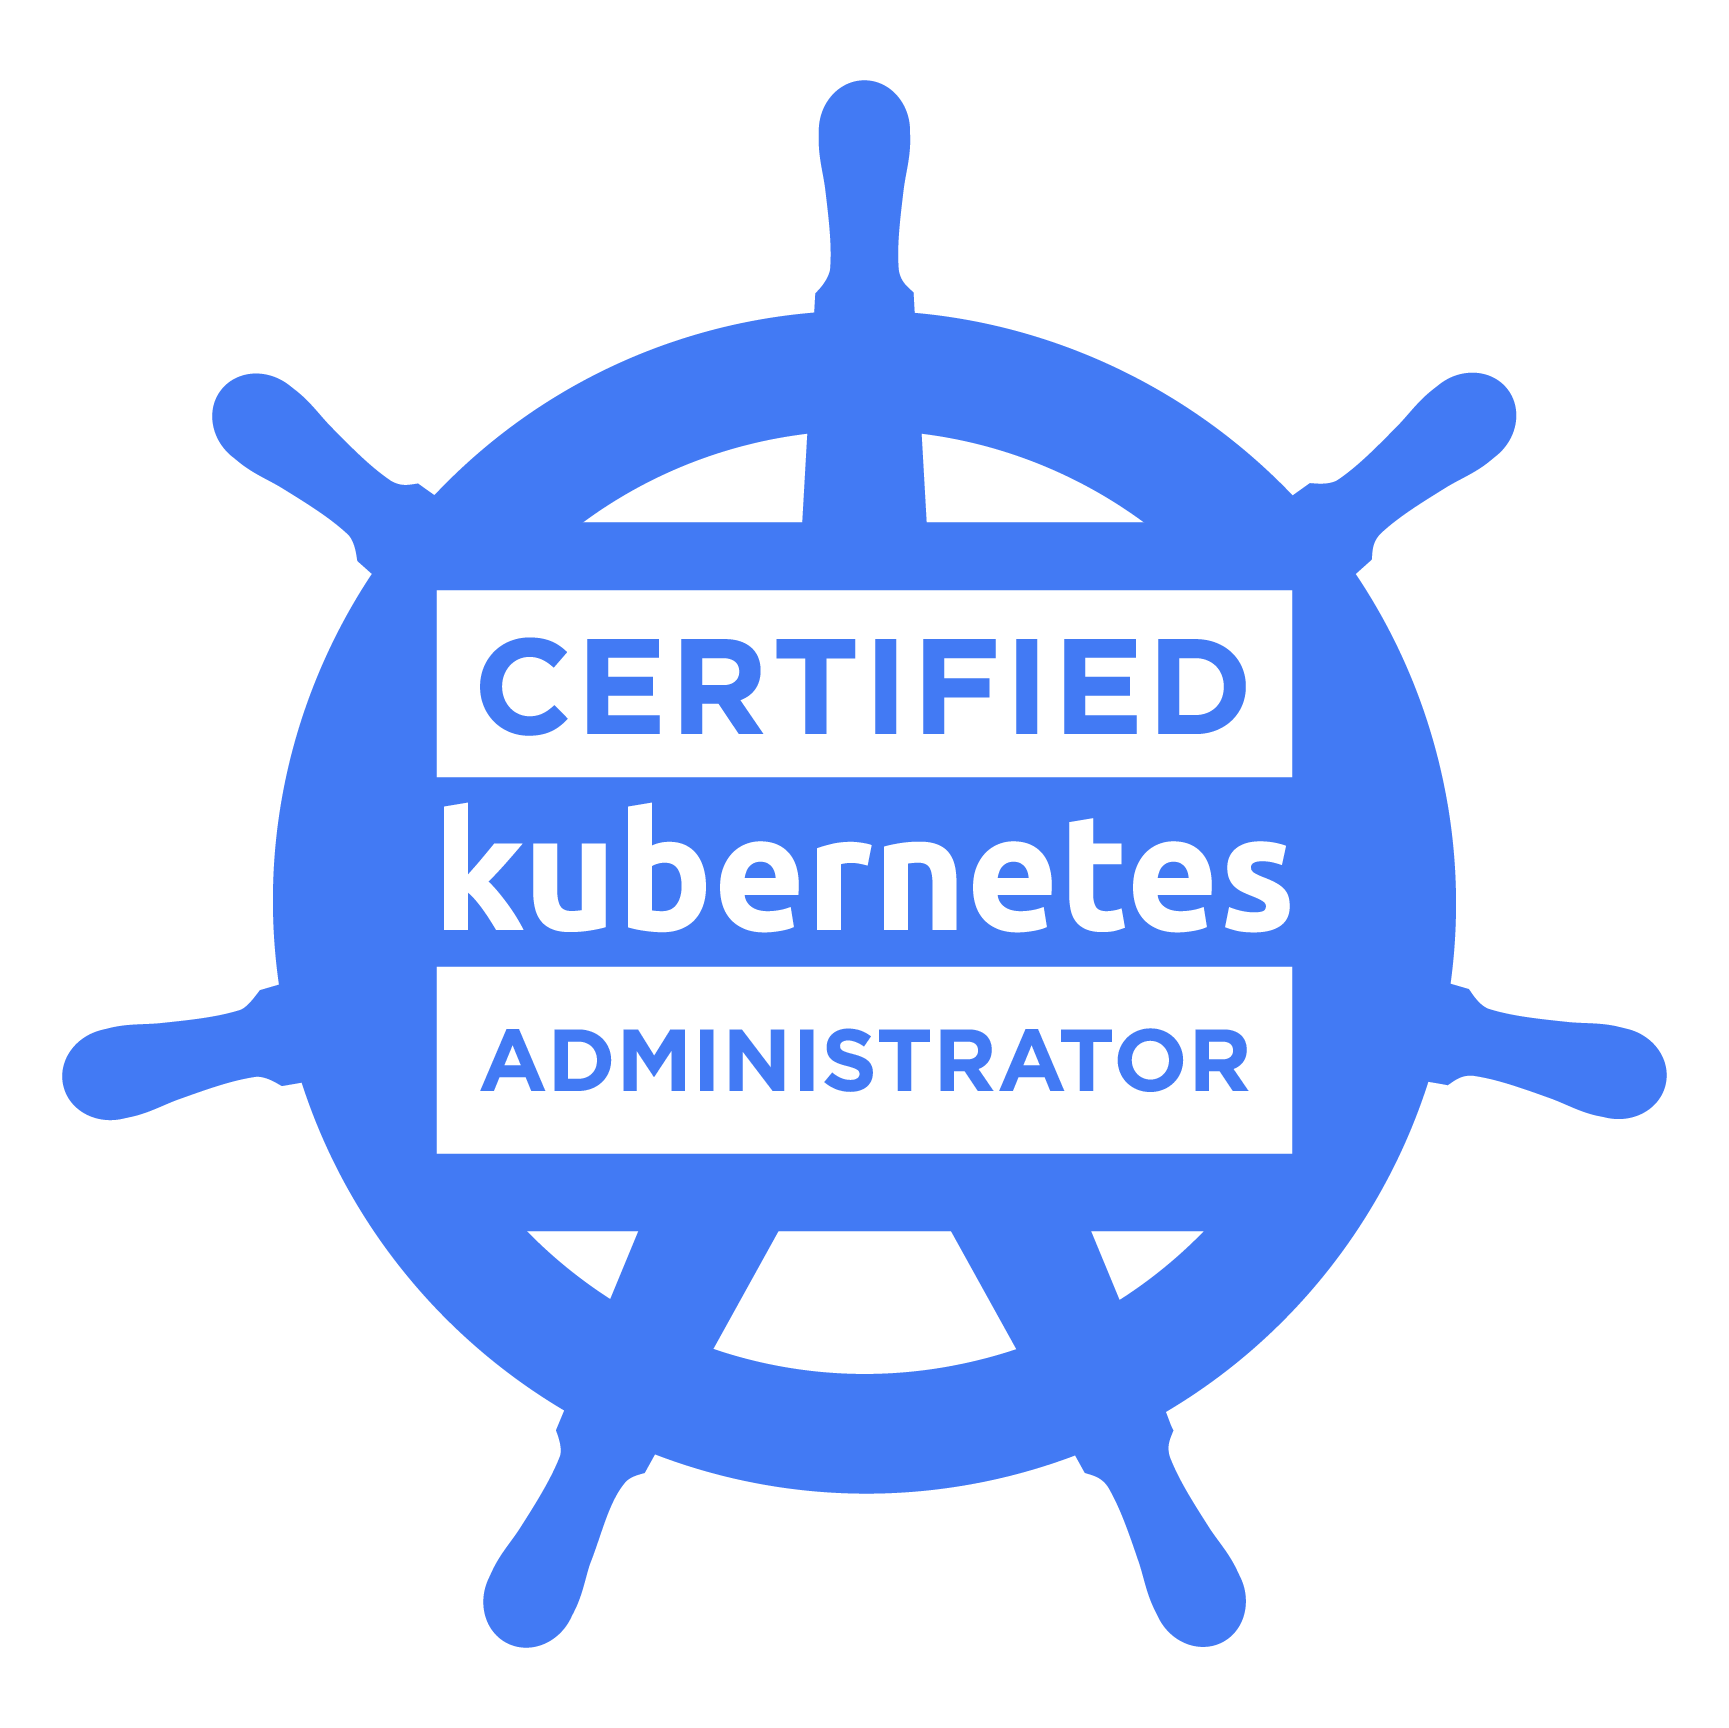 Taking the CKA Exam as an Azure User